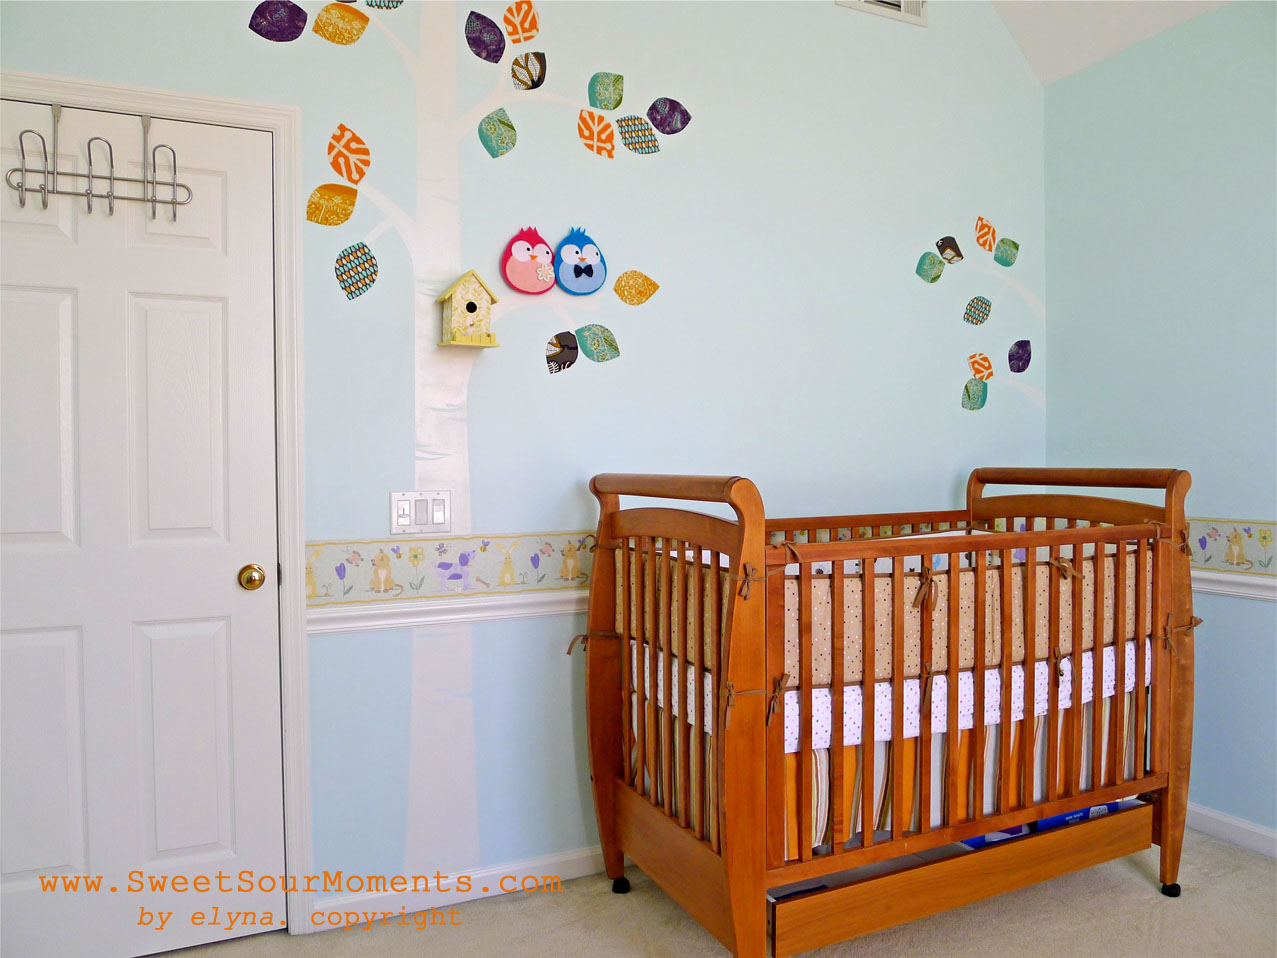 baby nursery sweetsourmoments